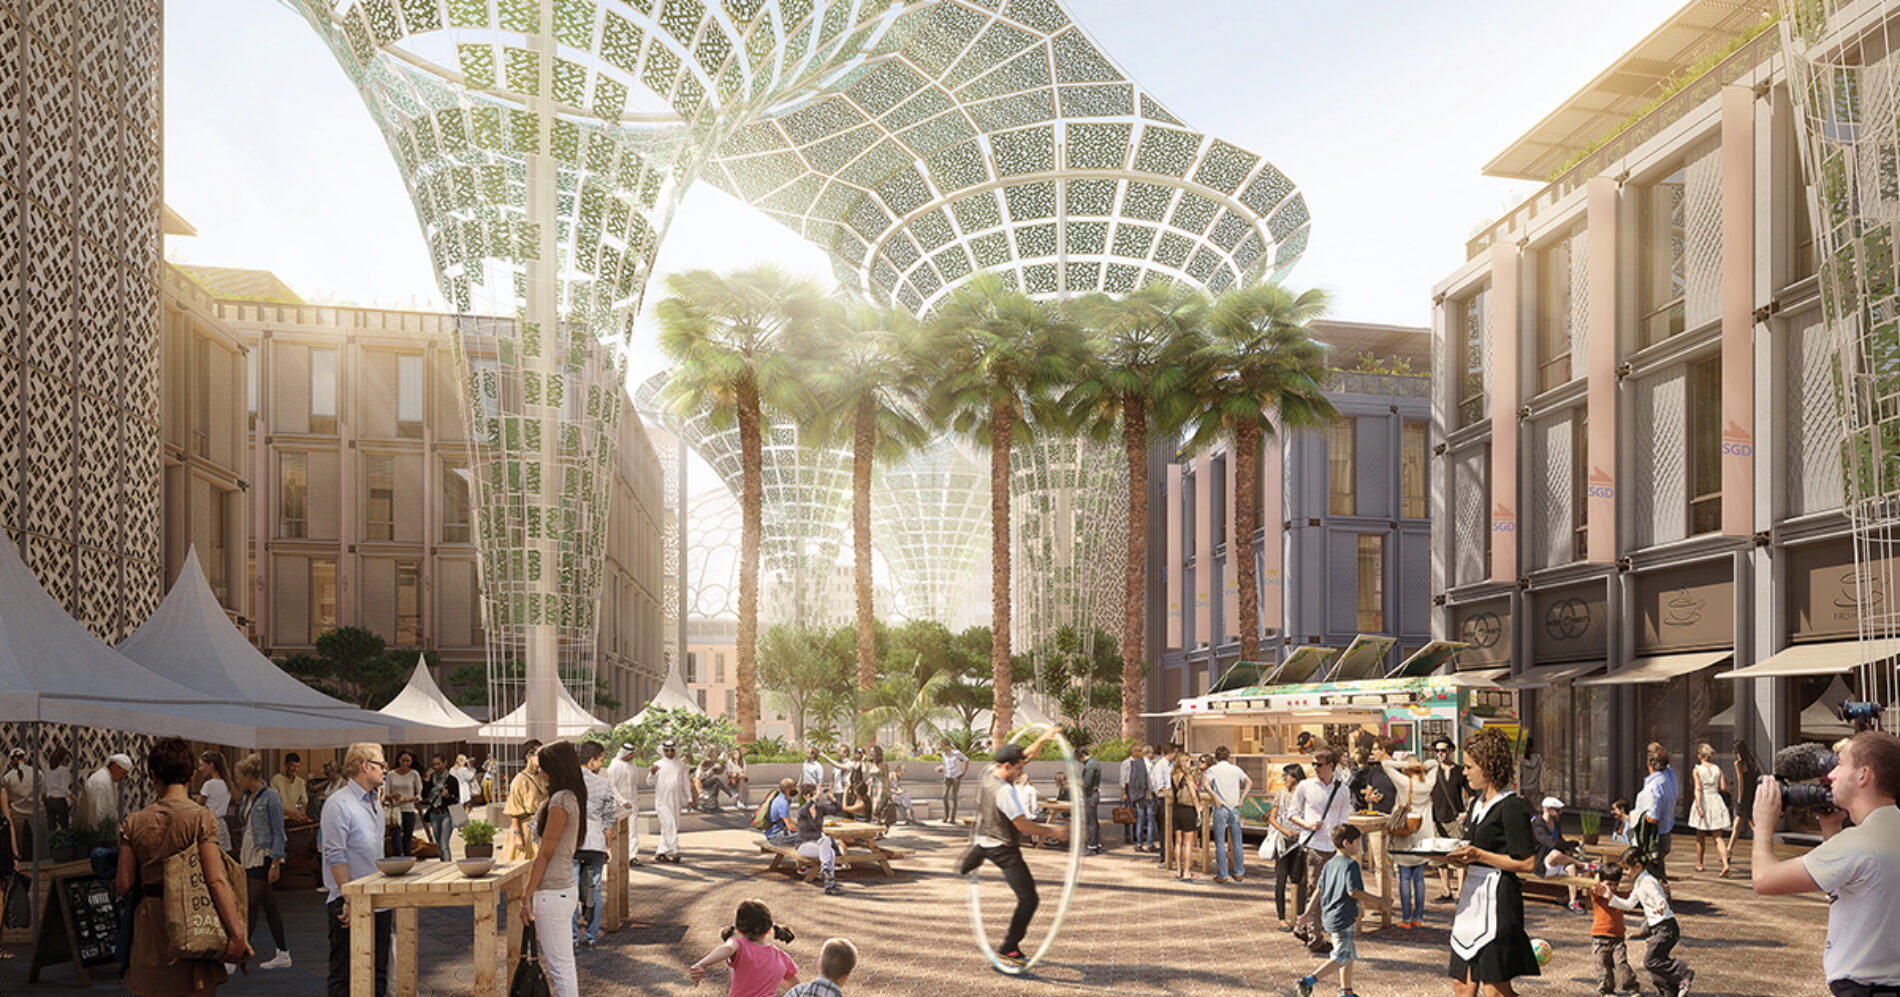 The world's greatest show: What to expect at Expo 2020 Dubai